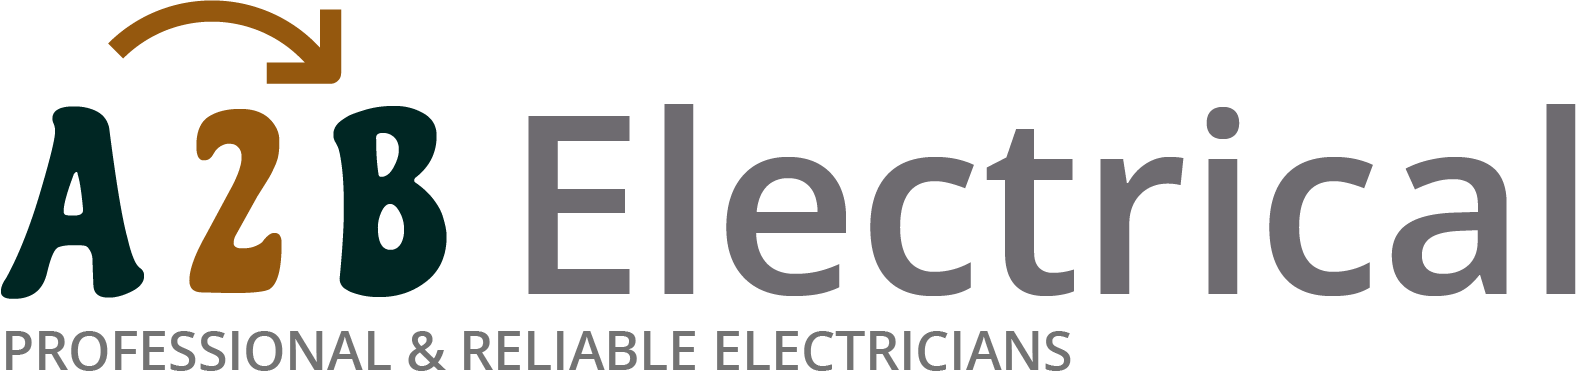 If you have electrical wiring problems in Wallington, we can provide an electrician to have a look for you.